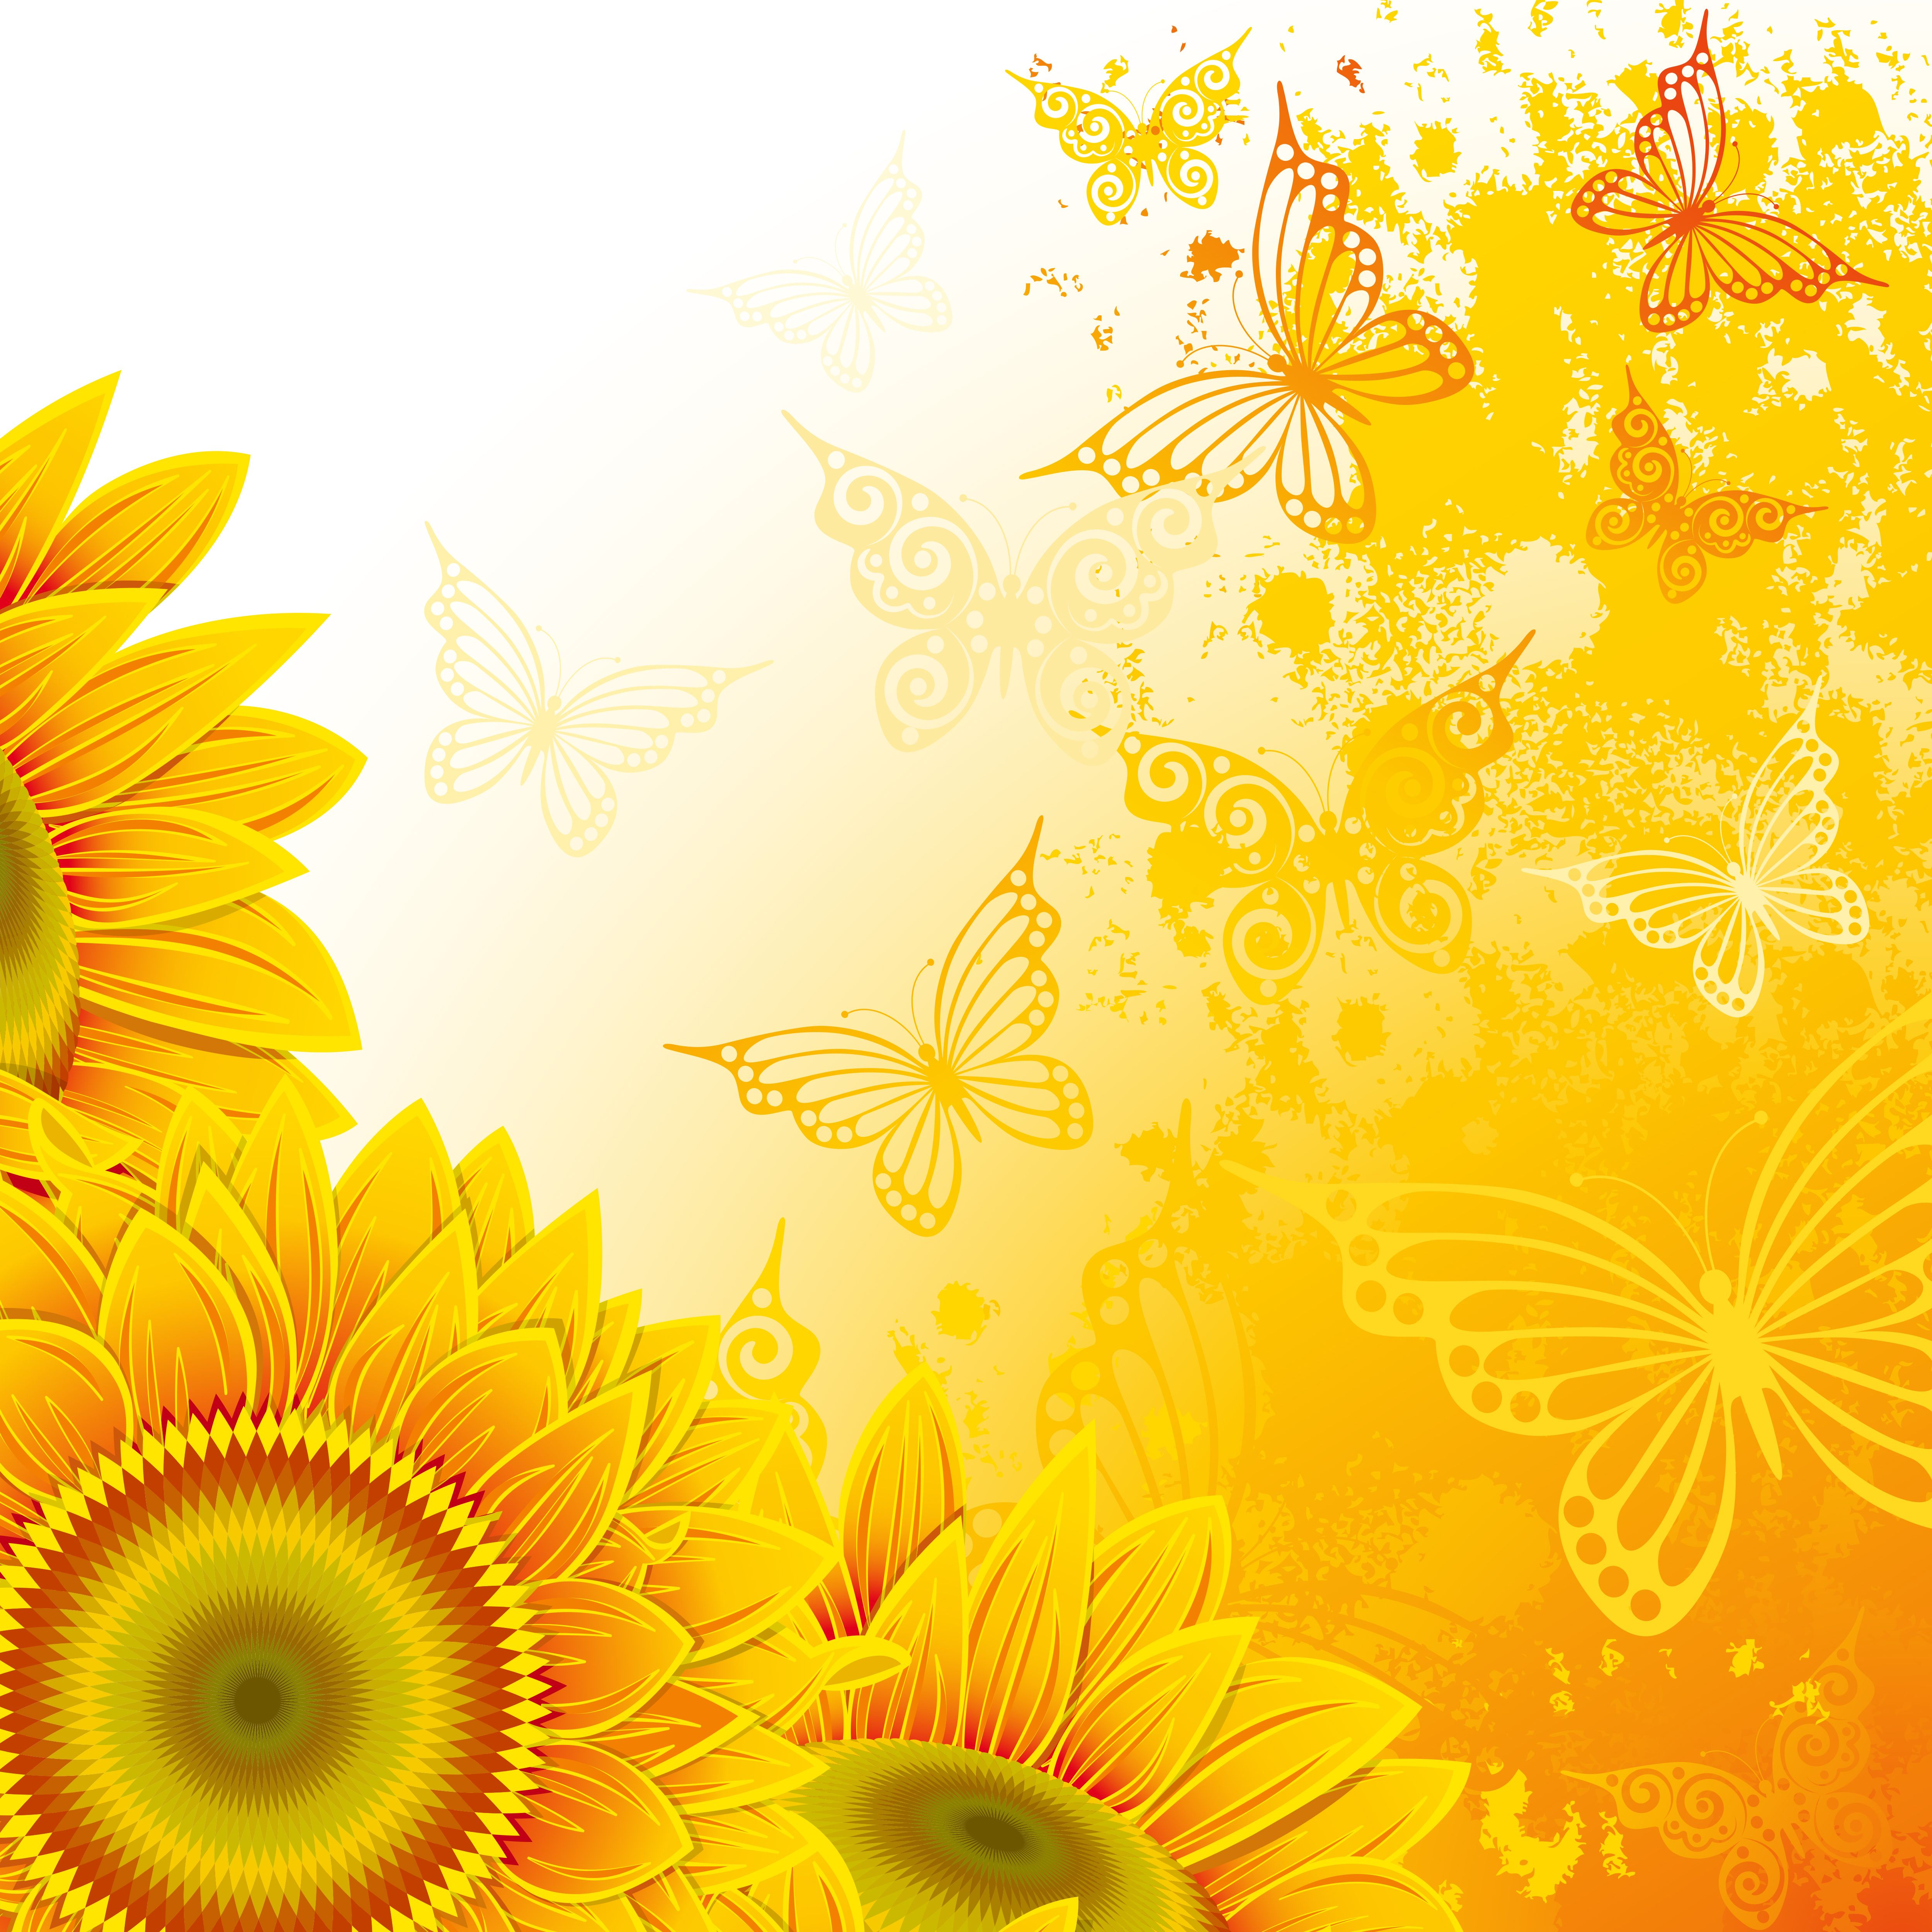 Sunflower background clipart jpg library 0_13afb1_a26a1bf5_orig (5000×5000) | Flower fairies ... jpg library